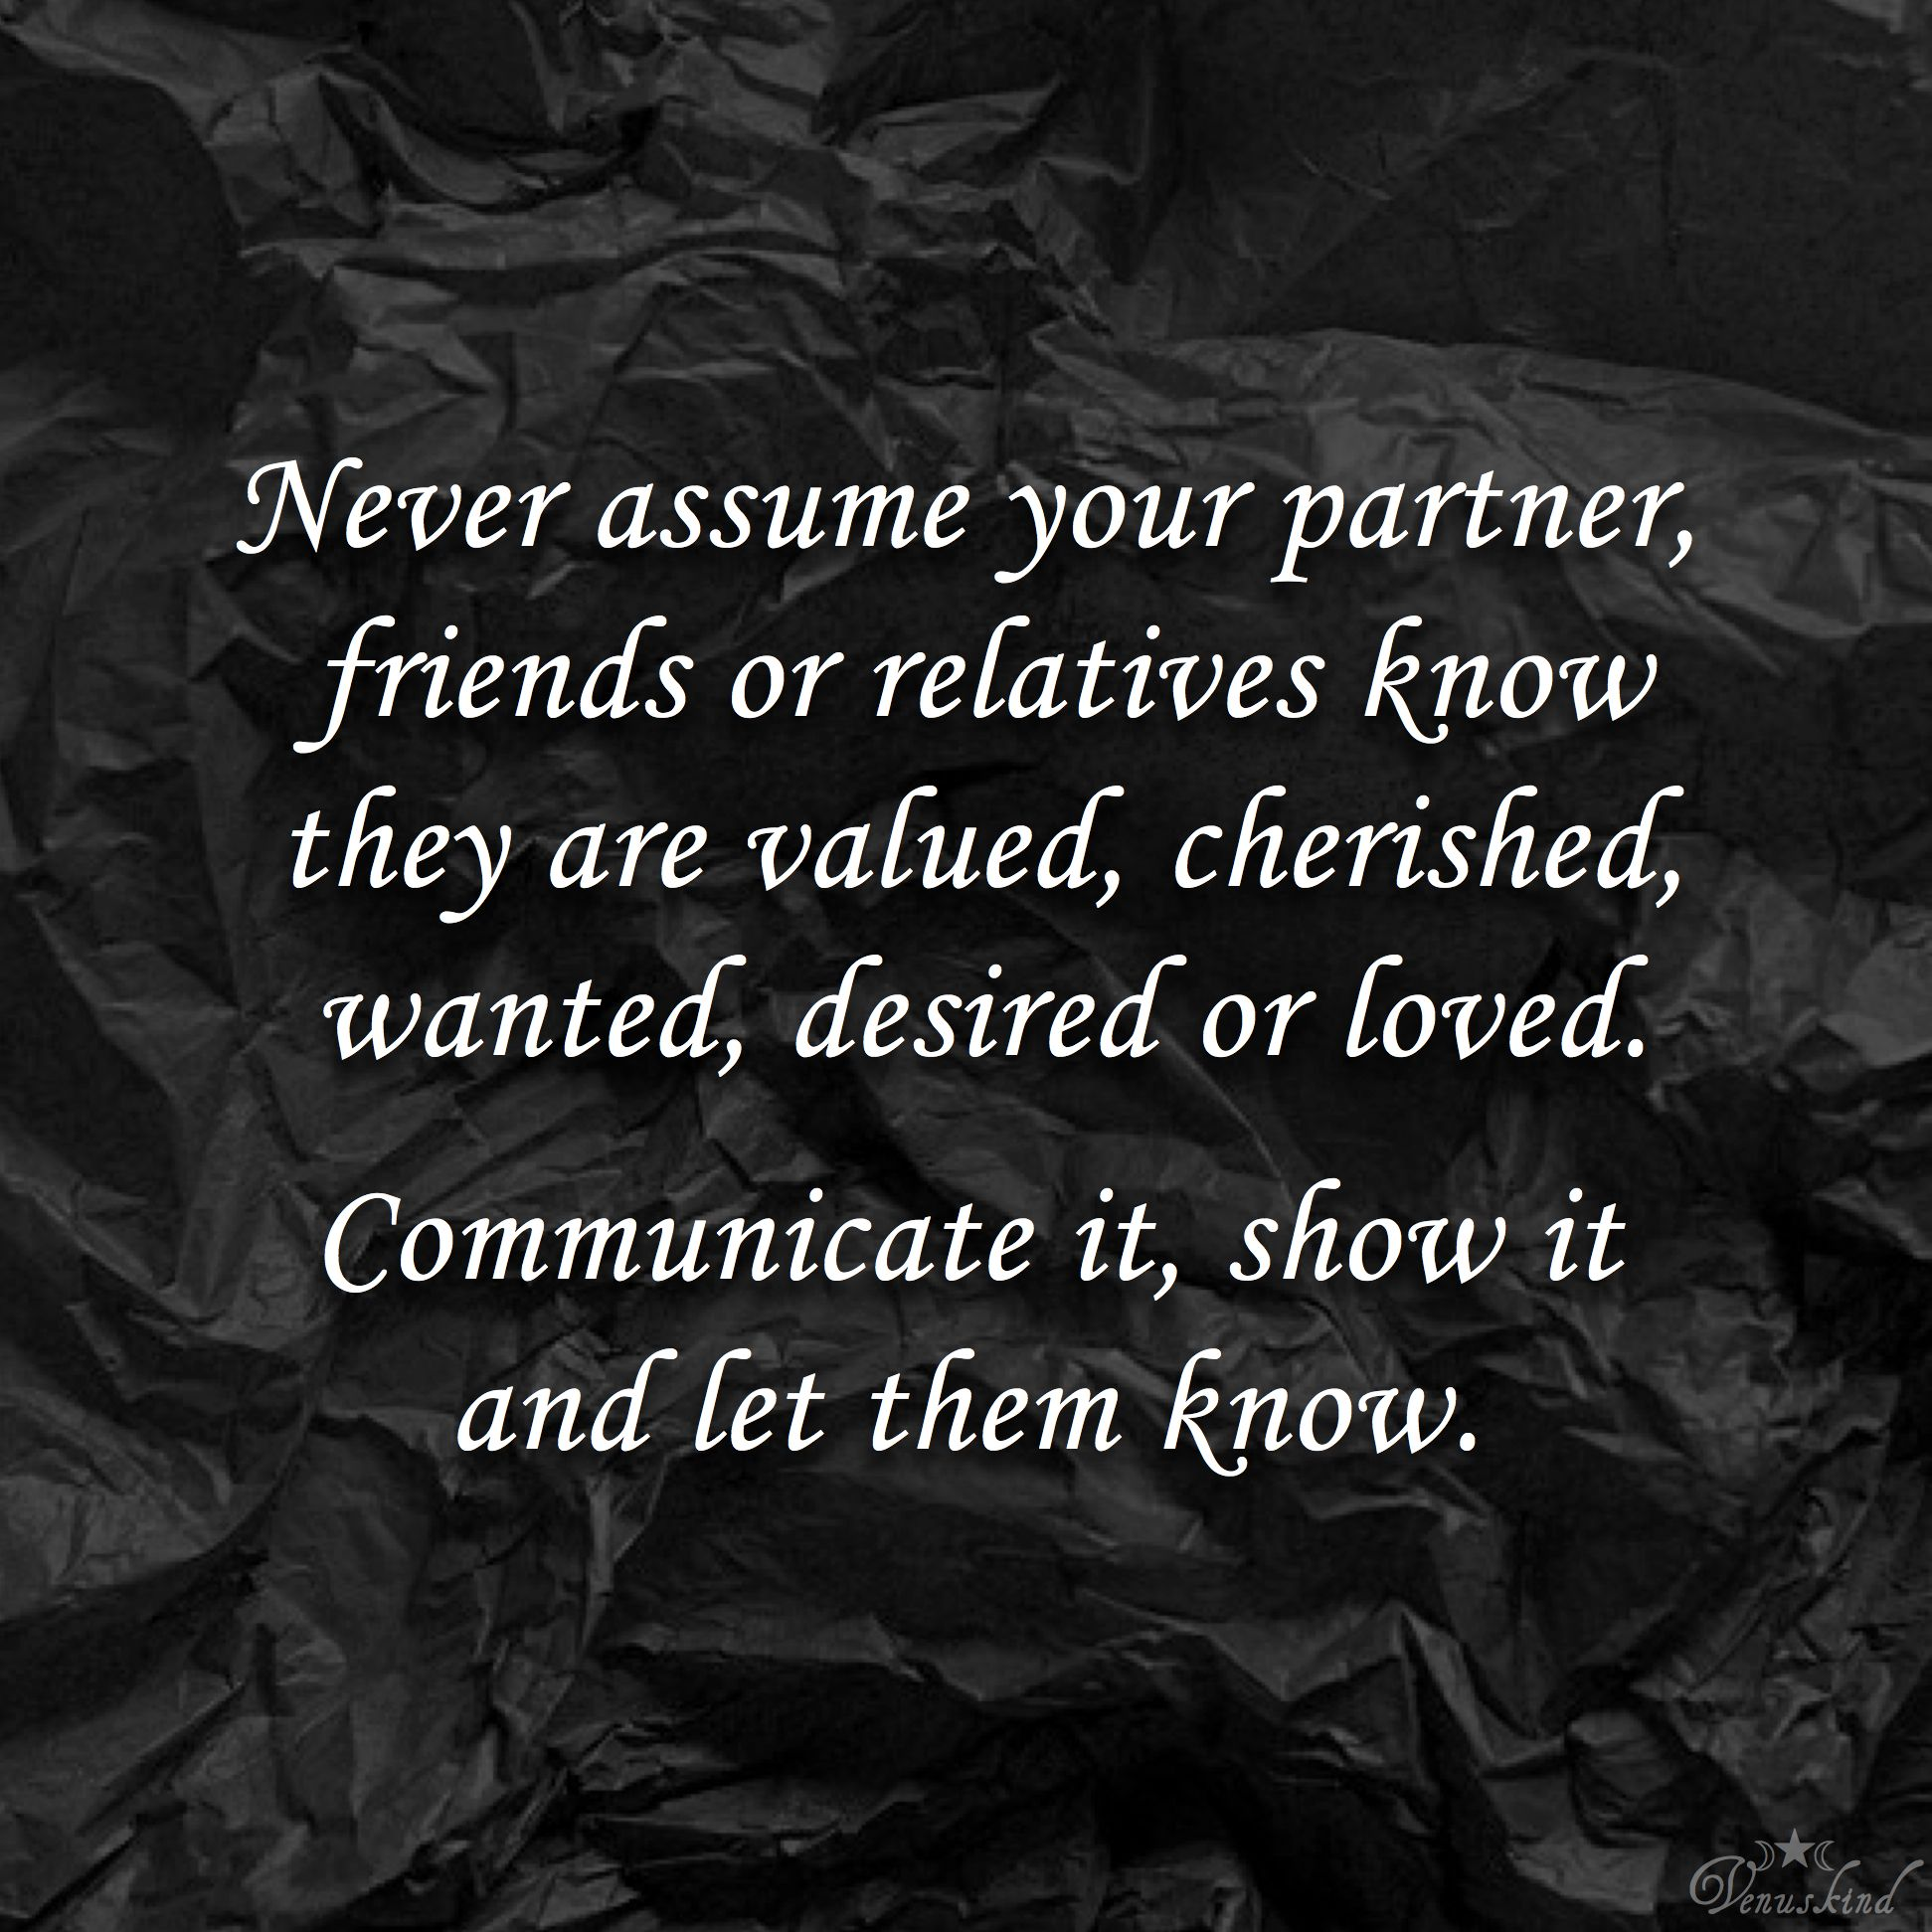 communication ☆ ☽☆☾ | Jokes quotes, Inspirational quotes ...